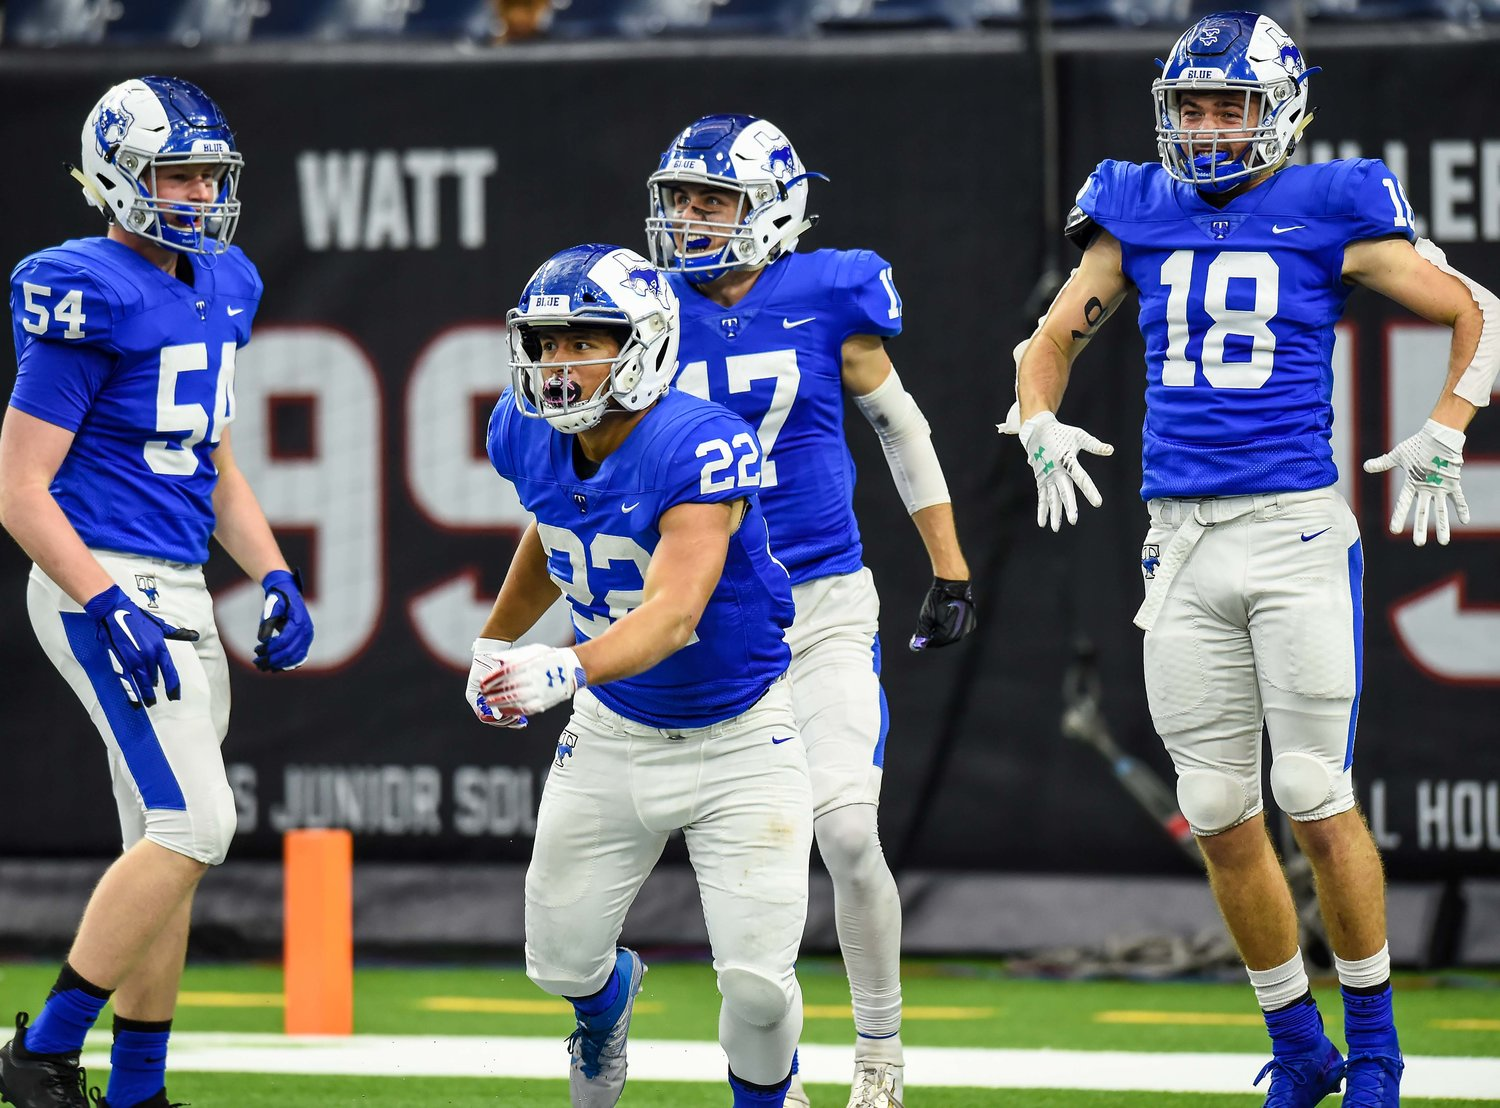 Houston, Tx. Dec 7, 2019: Taylor's Casey Shorter (22) after his TD run TD during the Regional Finals playoff game between Katy Taylor and Cy-Creek at NRG Stadium in Houston. (Photo by Mark Goodman / Katy Times)